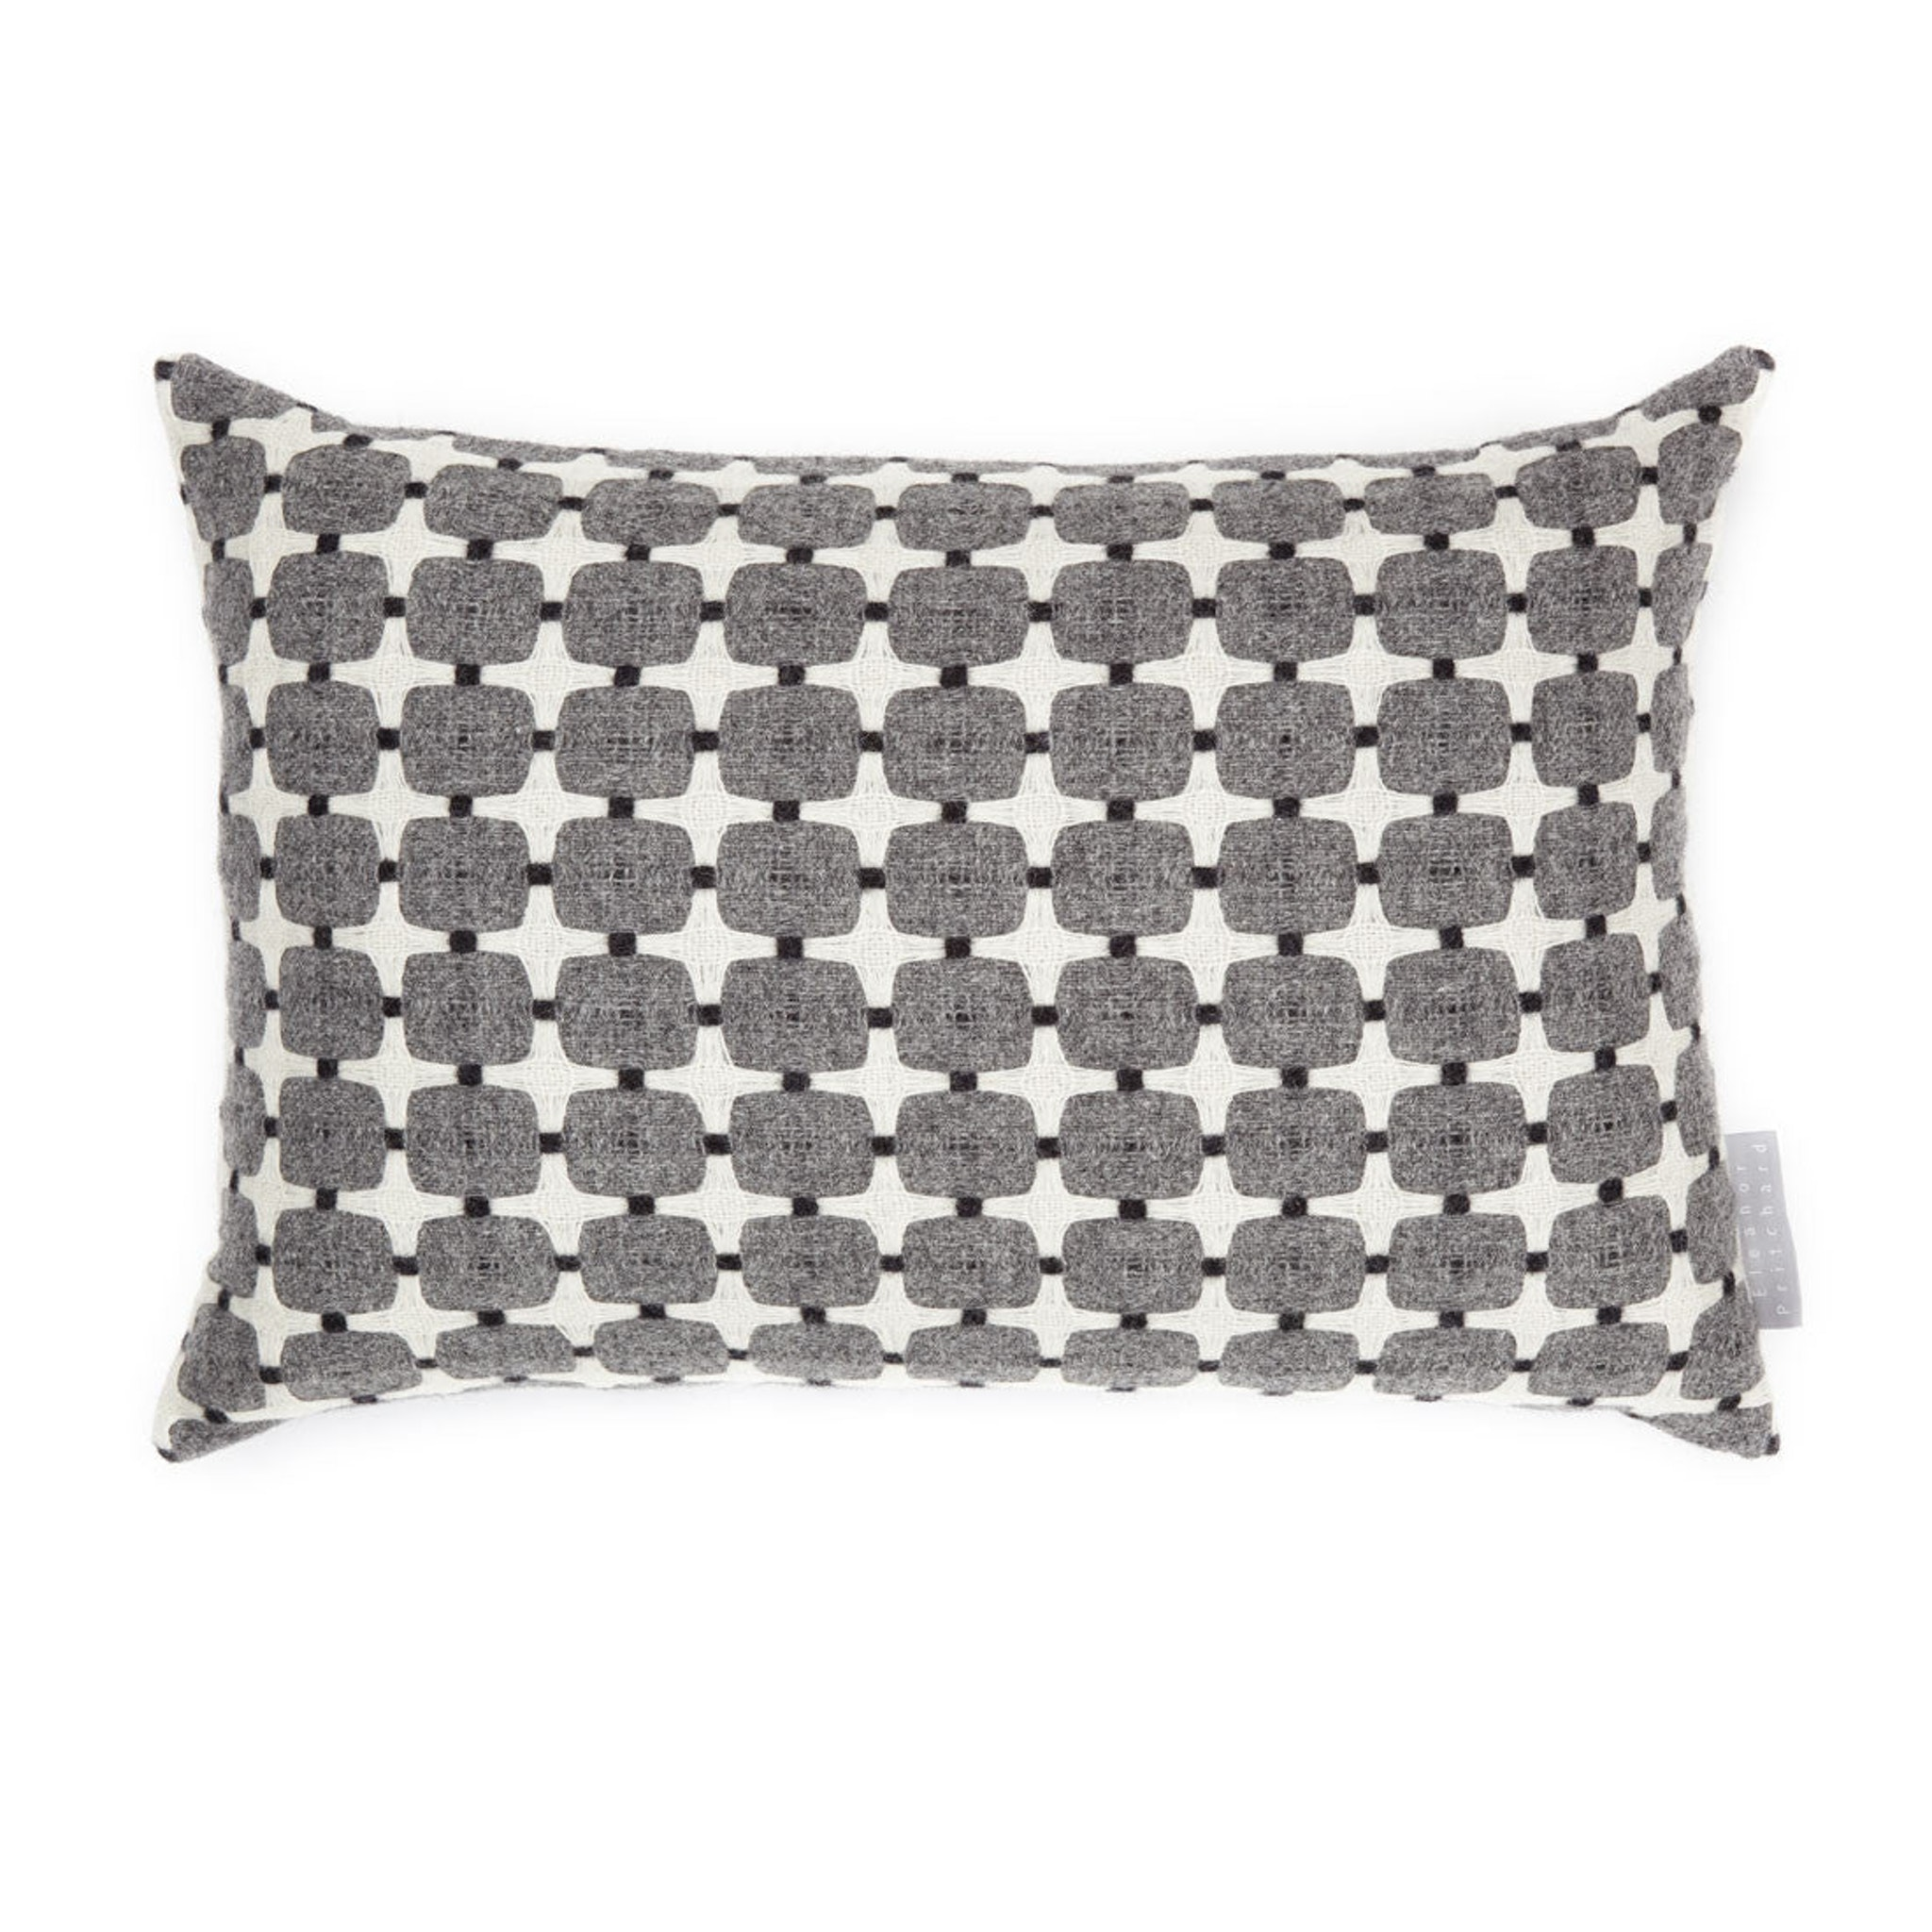 405 Line cushion by Eleanor Pritchard